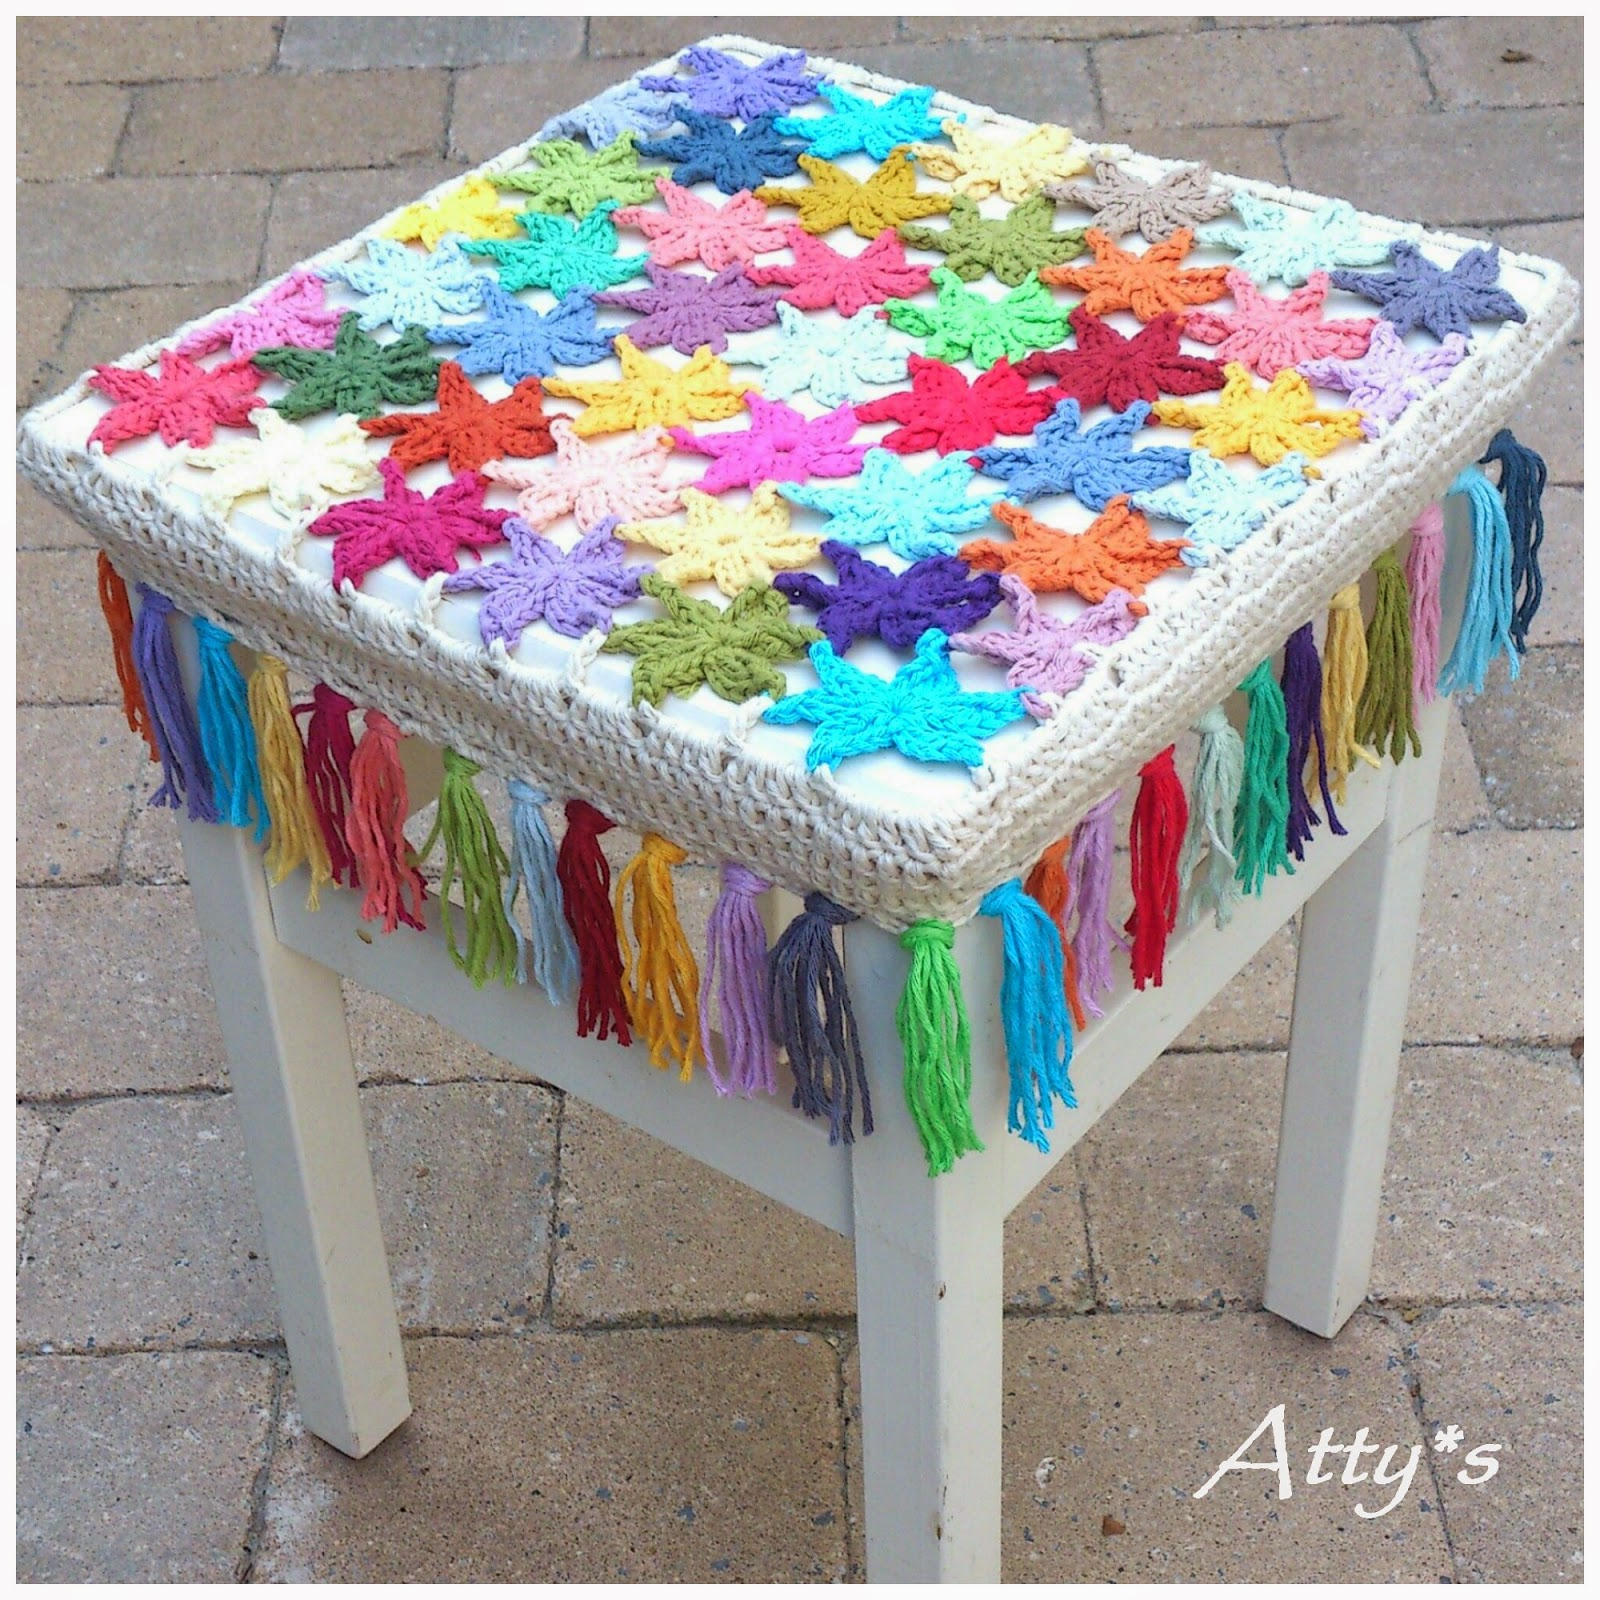 I used this flower pattern I made on that grey and rainy day to make another stool cover.  sc 1 st  Atty - blogger & attyu0027s: Crochet Flower Stool Cover islam-shia.org